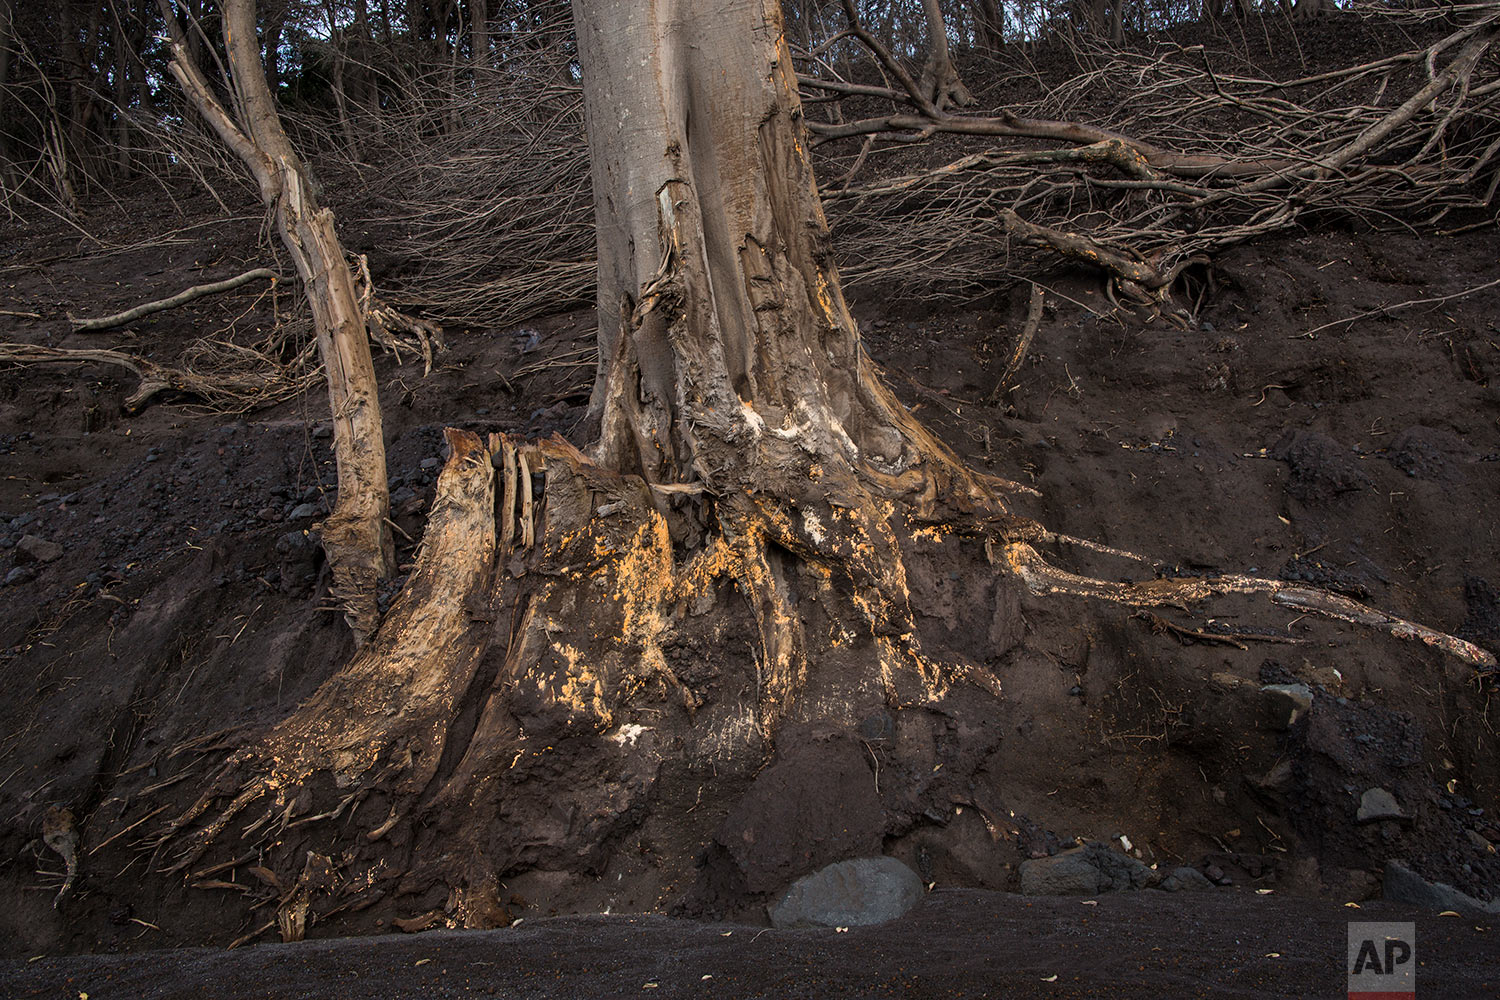 In this June 19, 2018 photo, the roots of a charred tree are exposed along the path of destruction in the aftermath of the Volcano of Fire's eruption in San Miguel Los Lotes, Guatemala. (AP Photo/Rodrigo Abd)